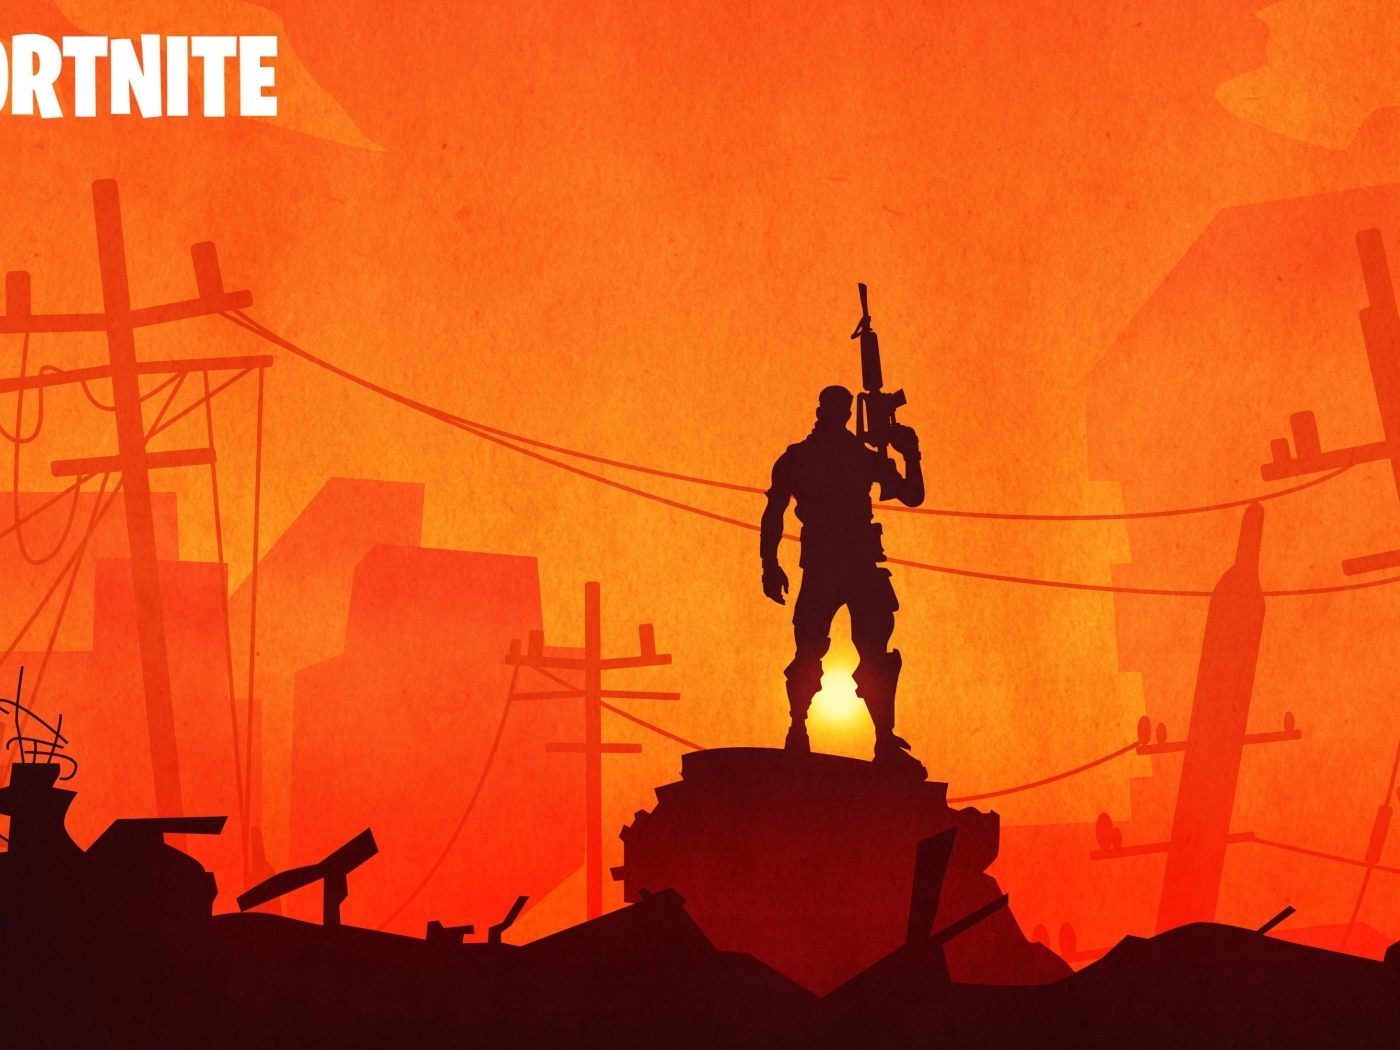 [Obrazek: fortnite-warrior-silhouette-in-sunset_62...0x1050.jpg]